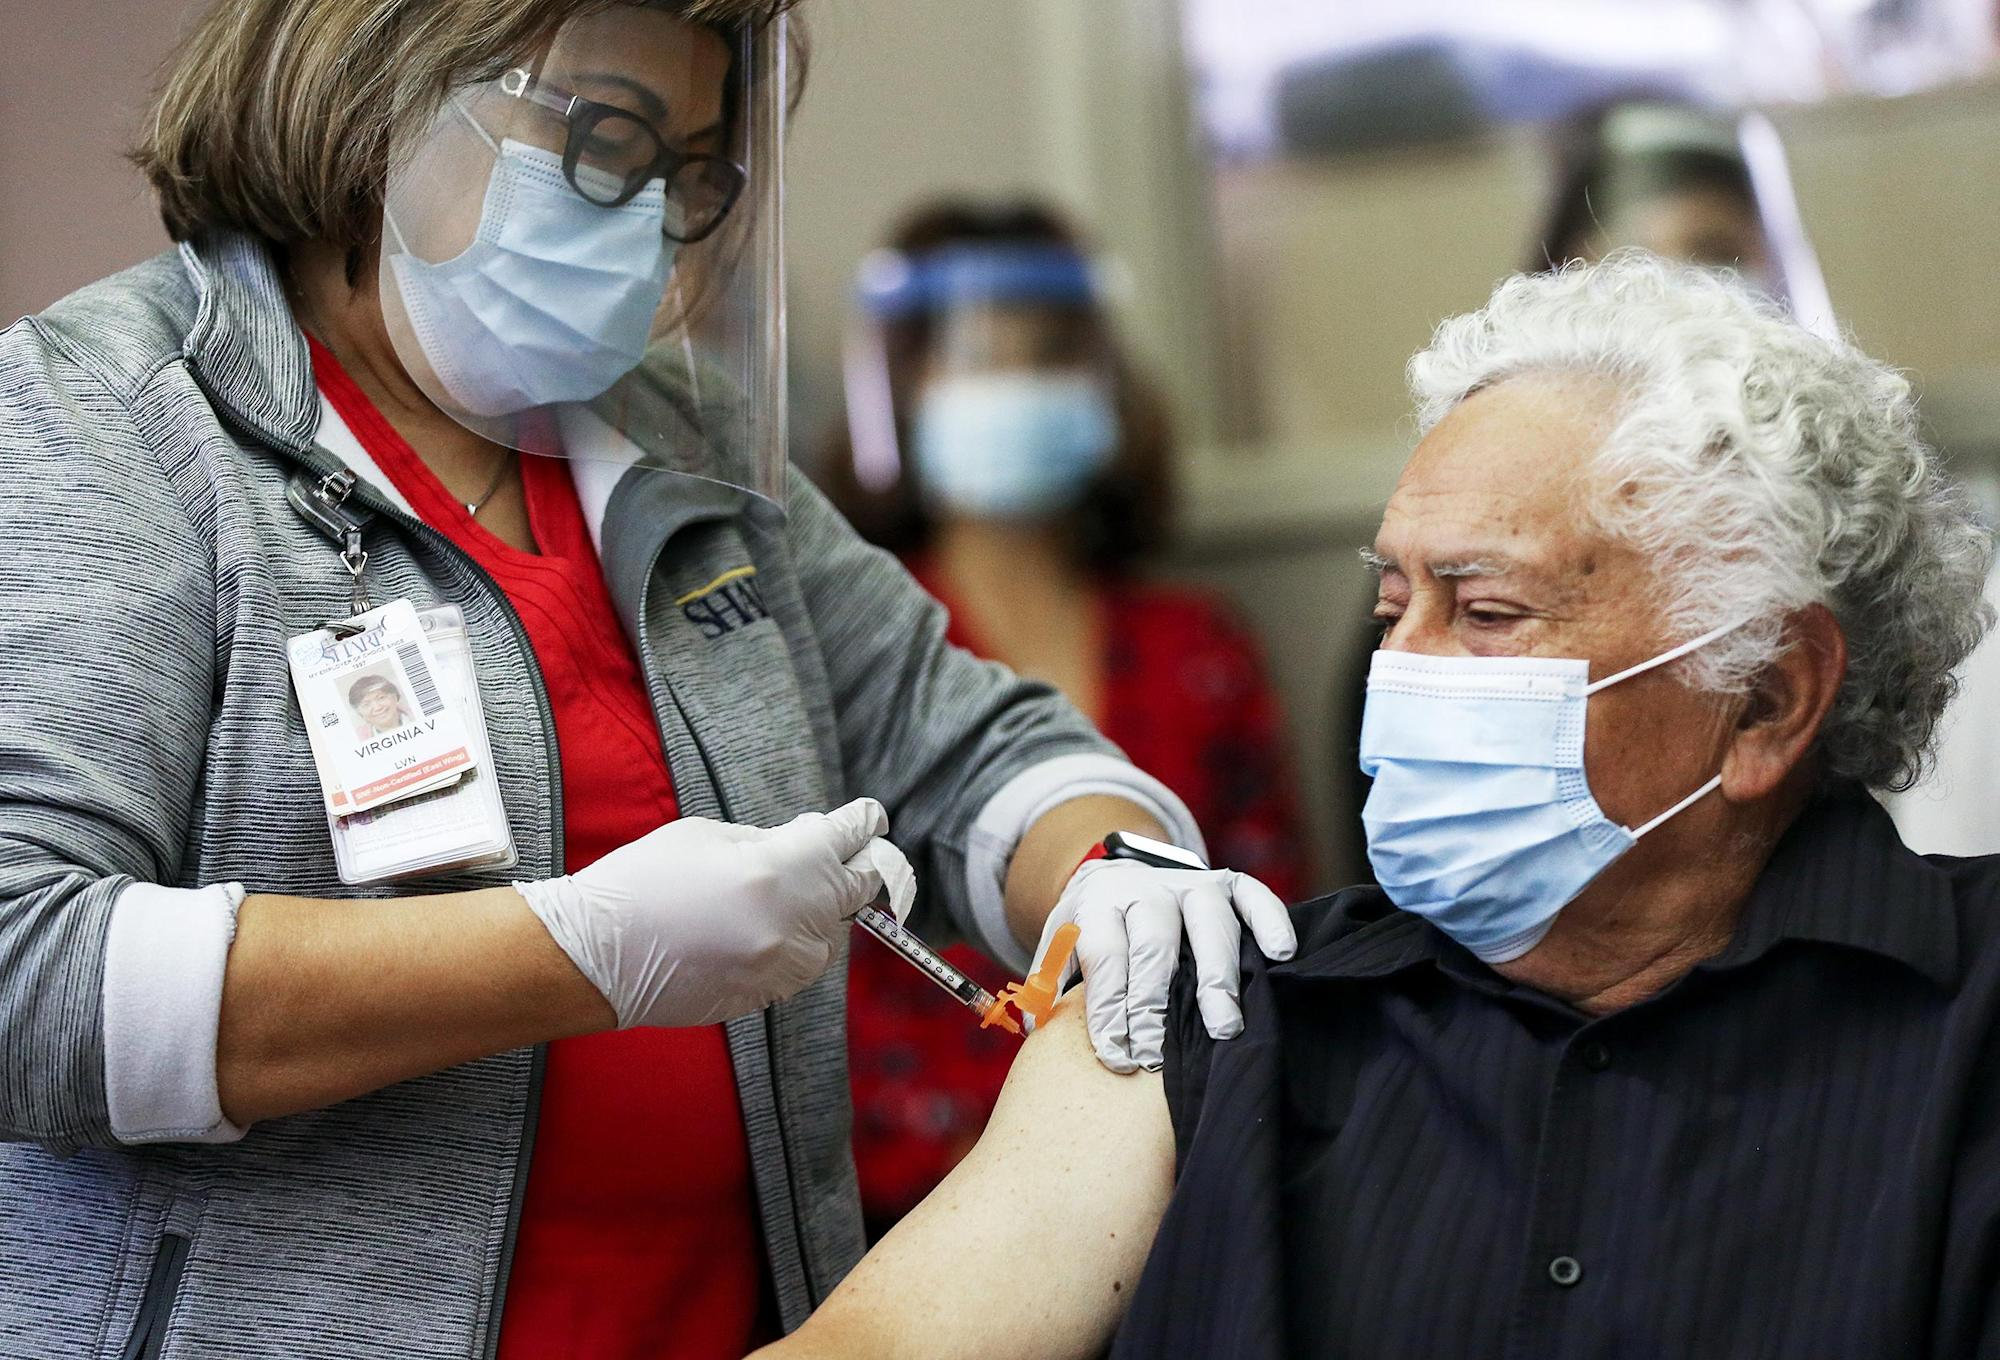 Latino workers, groups blast California officials over Covid-19 vaccine rollout changes - Yahoo News